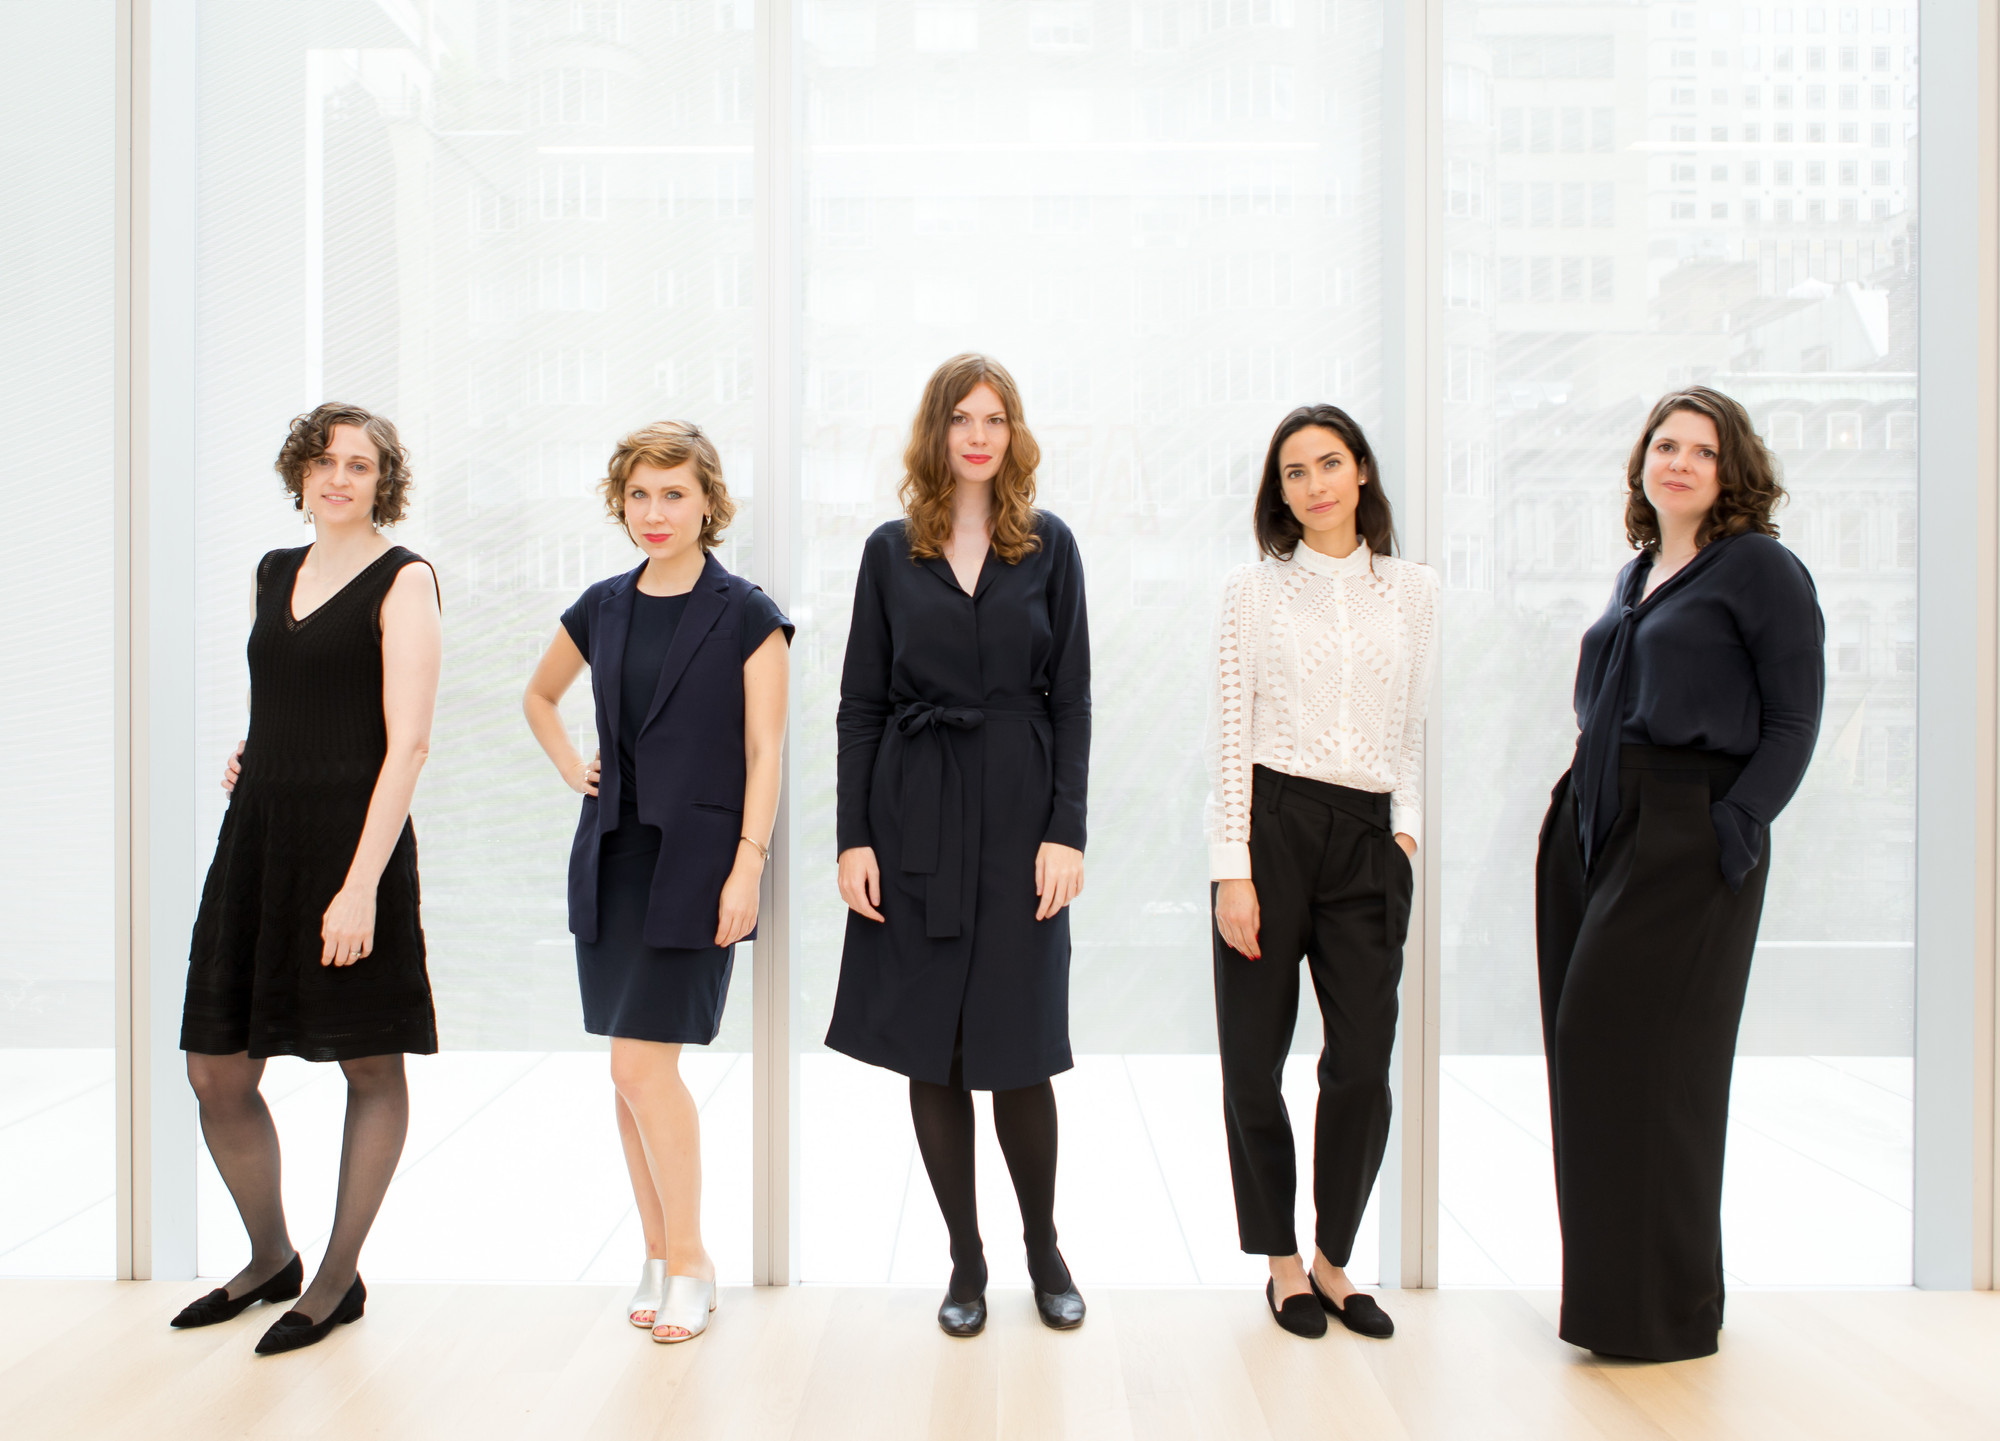 2018–19 MRC Fellows, from left: Charlotte Healy, Kaegan Sparks, Barbora Bartunkova, Michaëla de Lacaze, and Erica DiBenedetto. Photo: Marcin J. Muchalski, Diamond Shot Studio